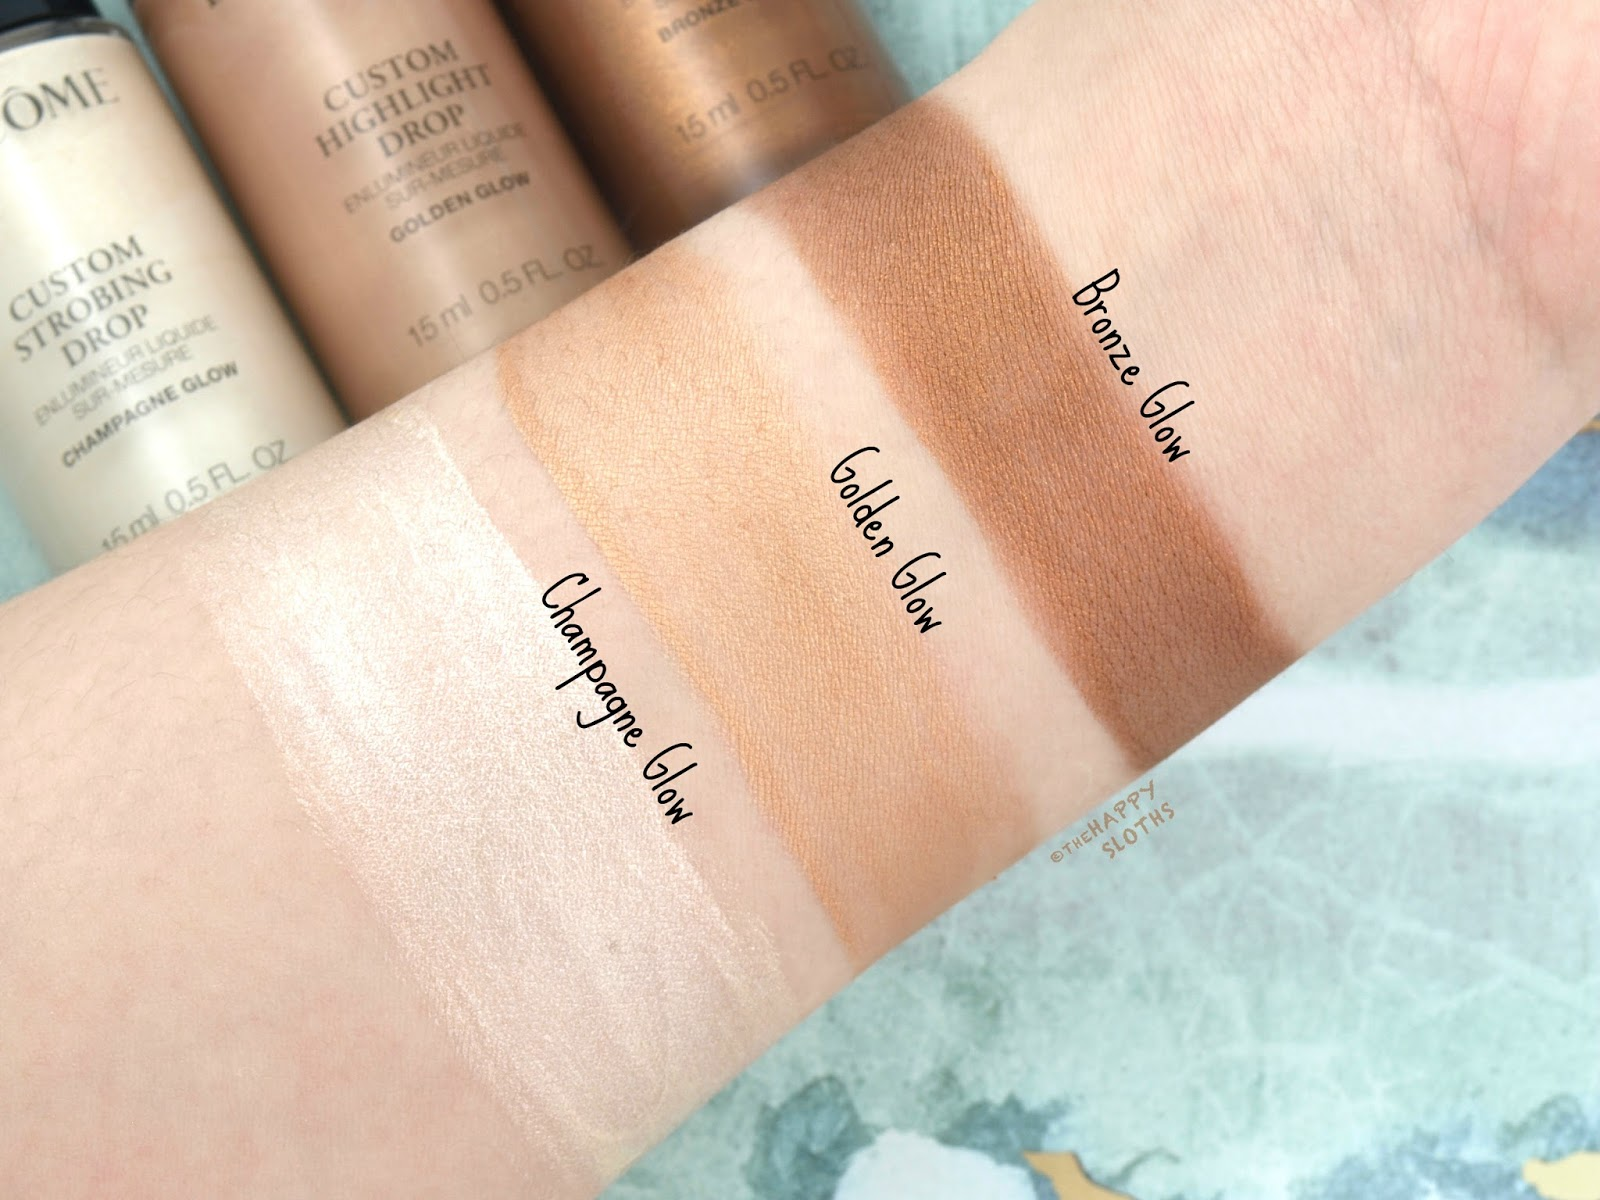 Lancome | Custom Glow Drops Ultra-Concentrated Liquid Highlighter | Champagne Glow, Golden Glow & Bronze Glow: Review and Swatches